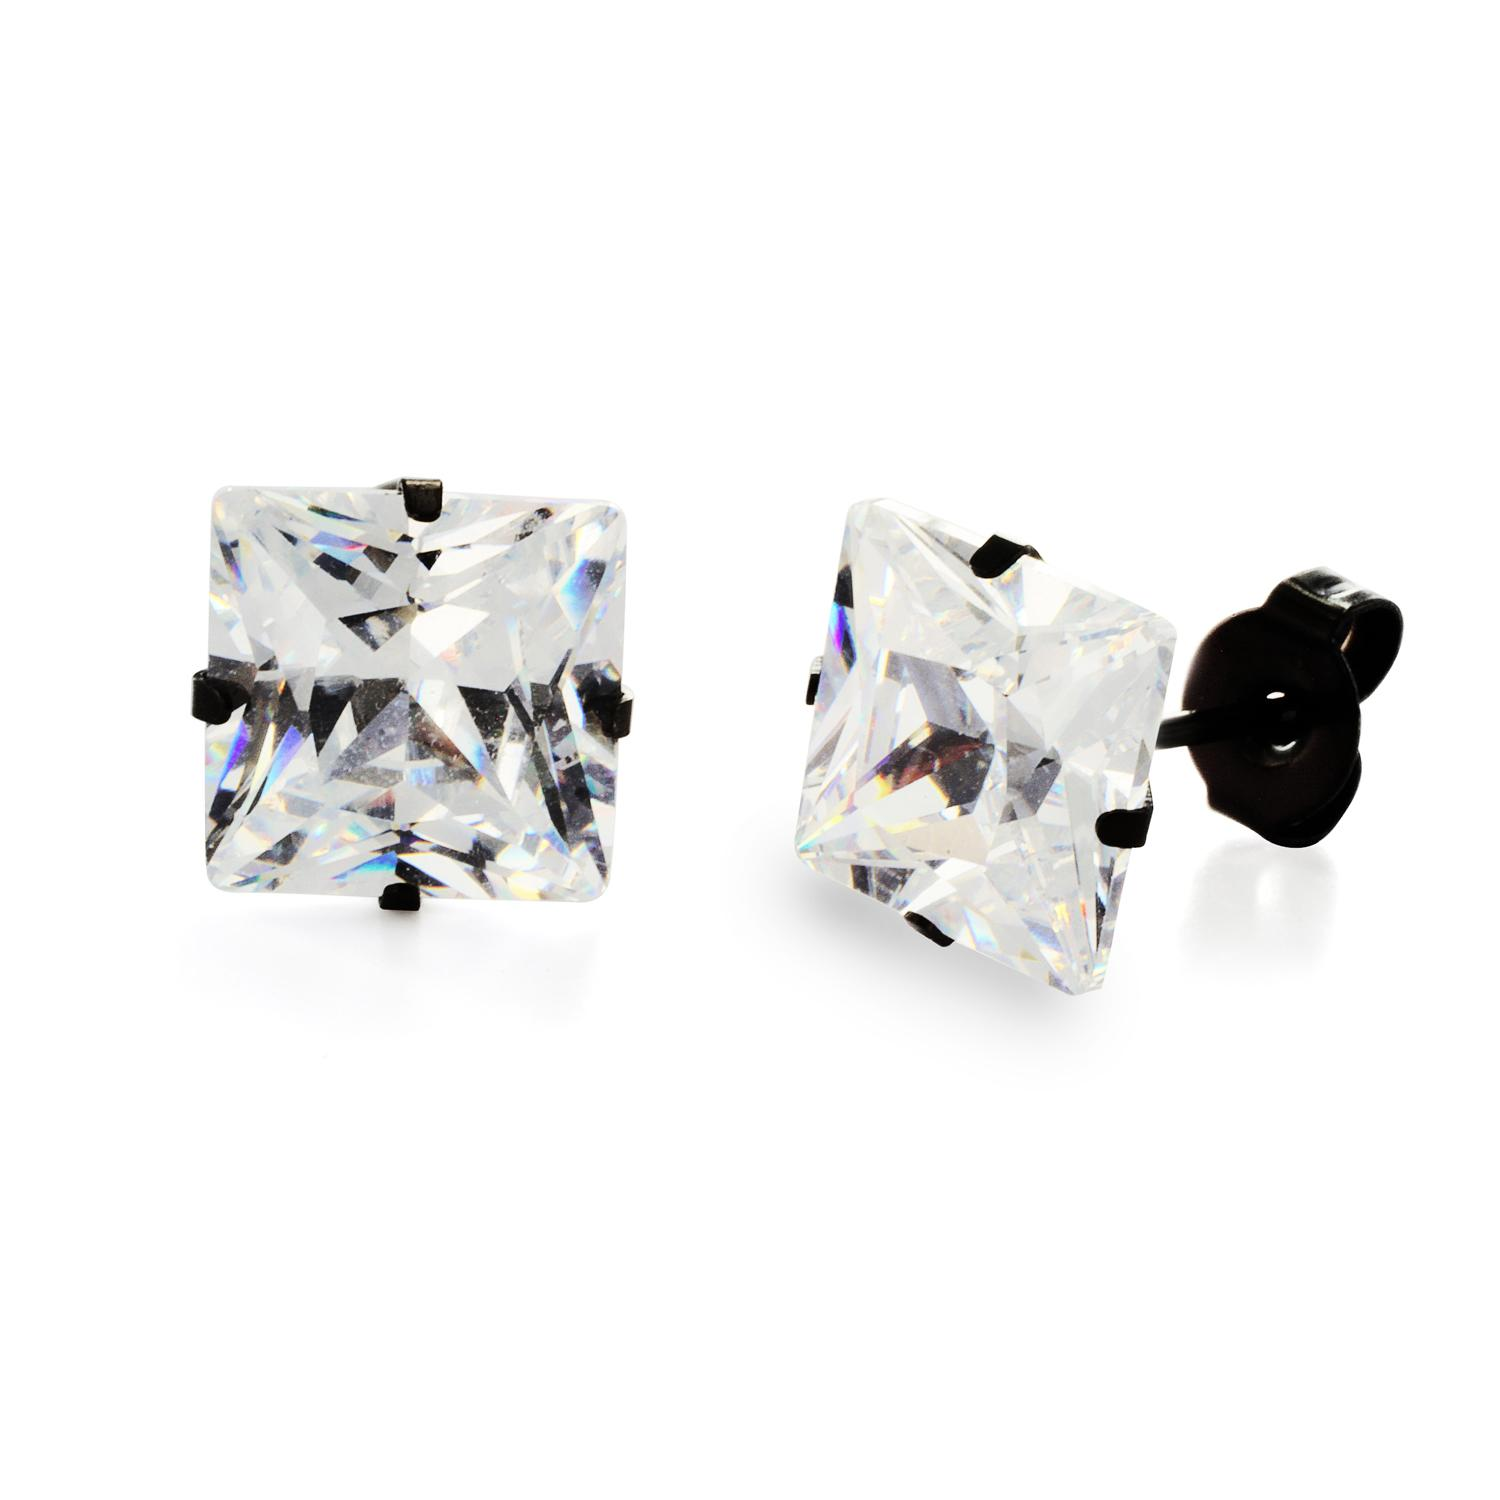 Black Plated Stainless Steel Stud Earrings with Princess Cut Clear CZ - 8 mm